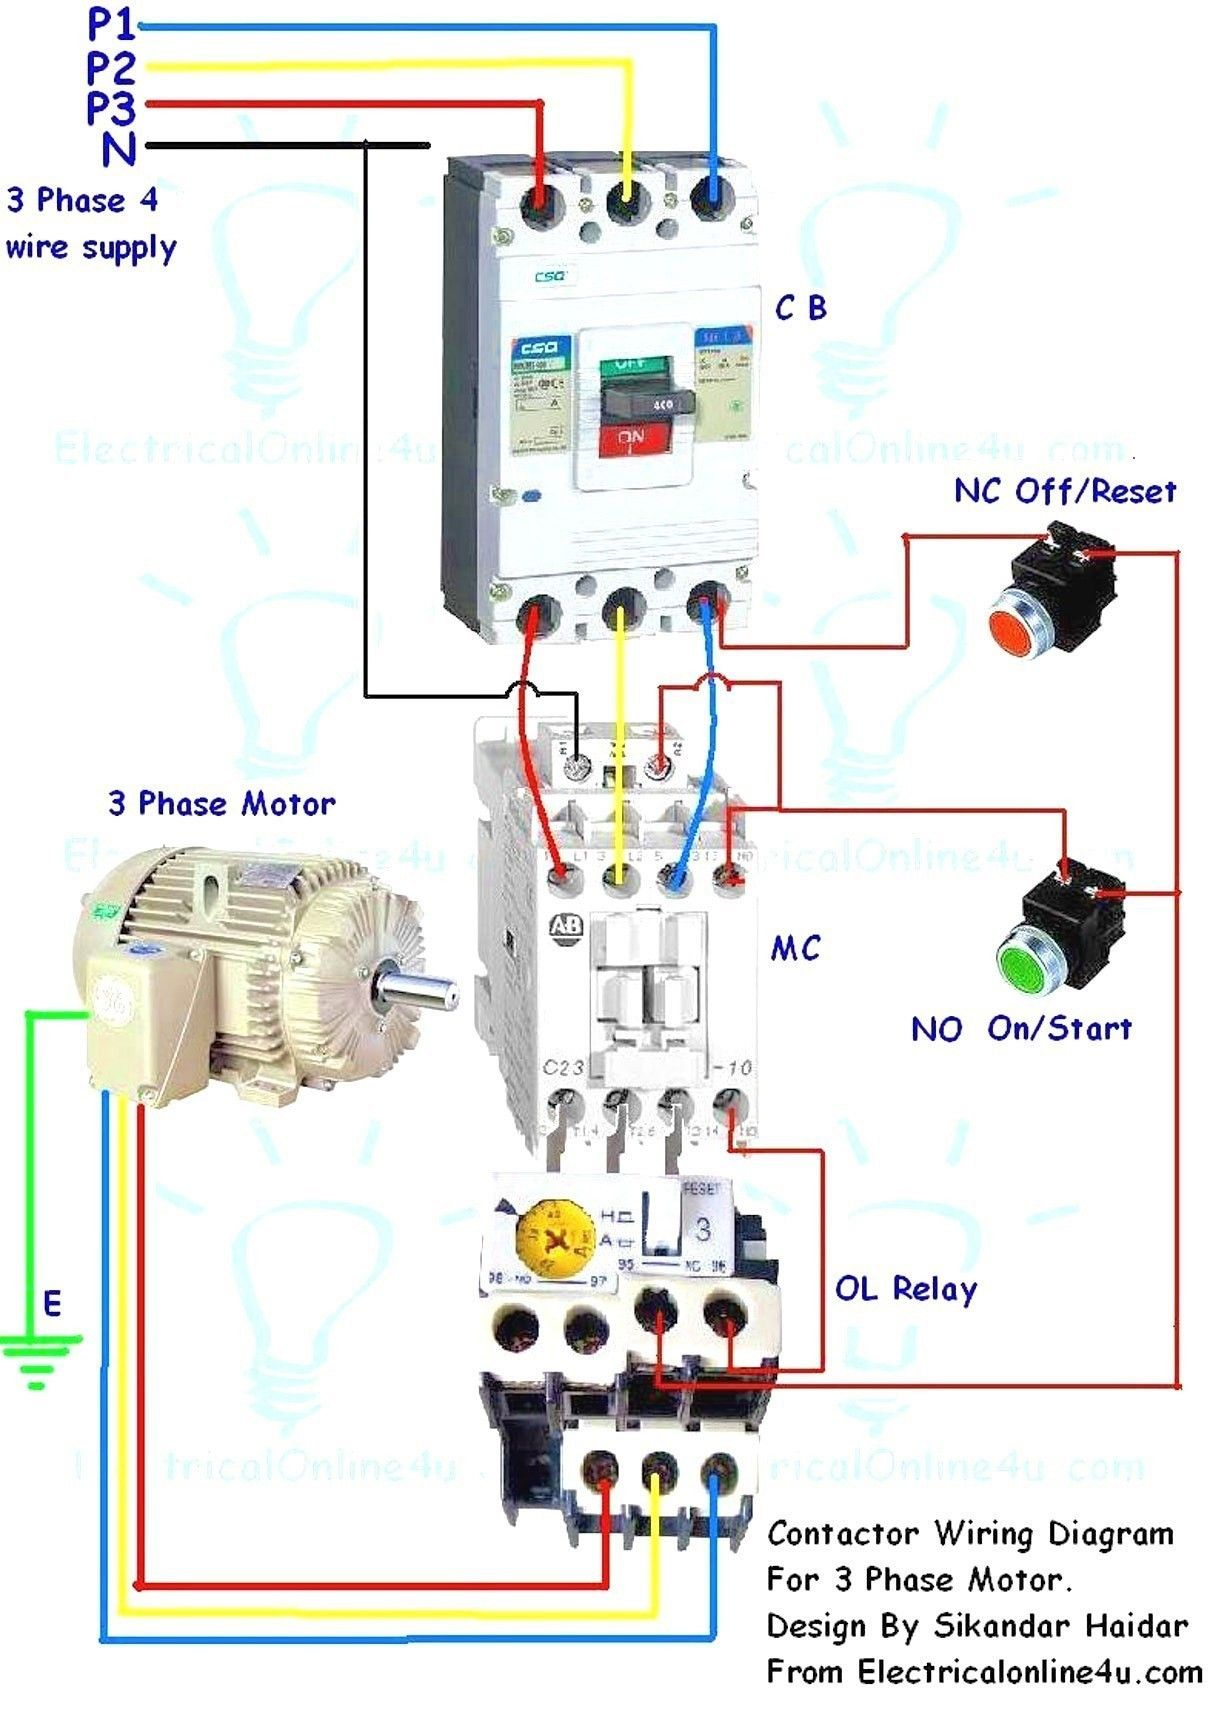 hight resolution of 240 volt contactor wiring diagram free download wiring diagram view 3 phase wire wiring diagram free